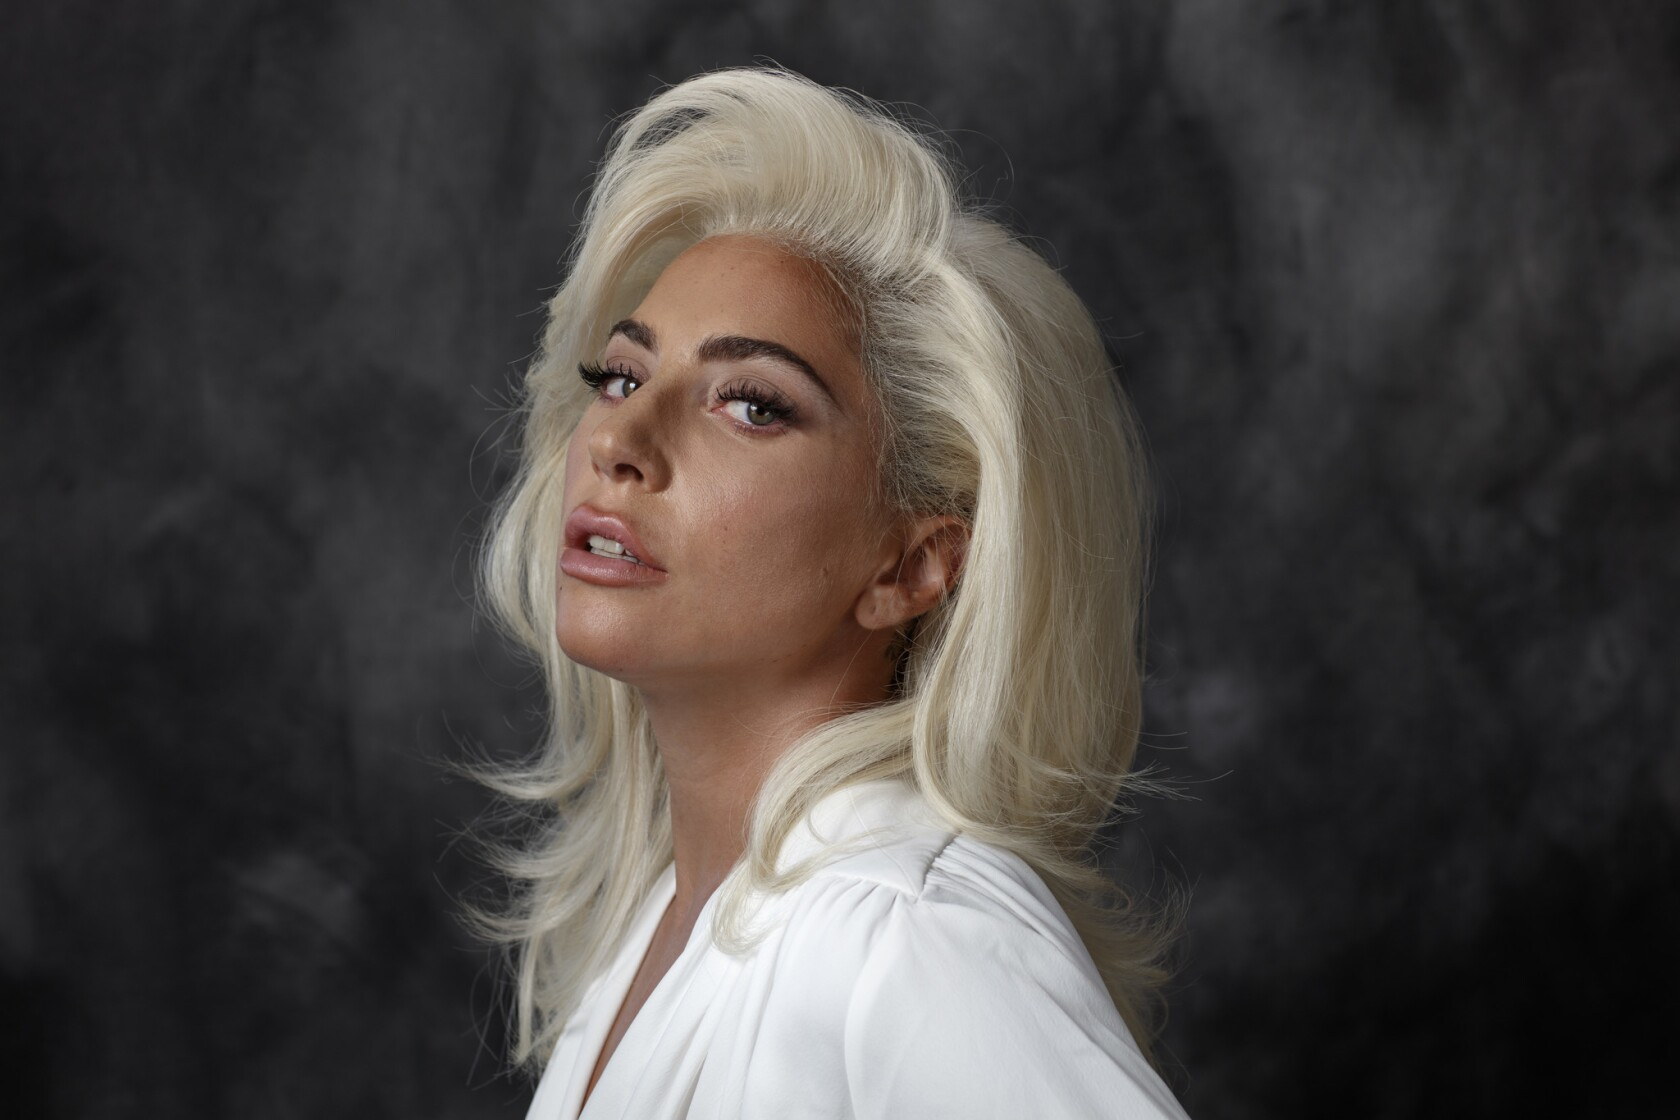 Must Reads: Lady Gaga on letting go for 'A Star Is Born' and what